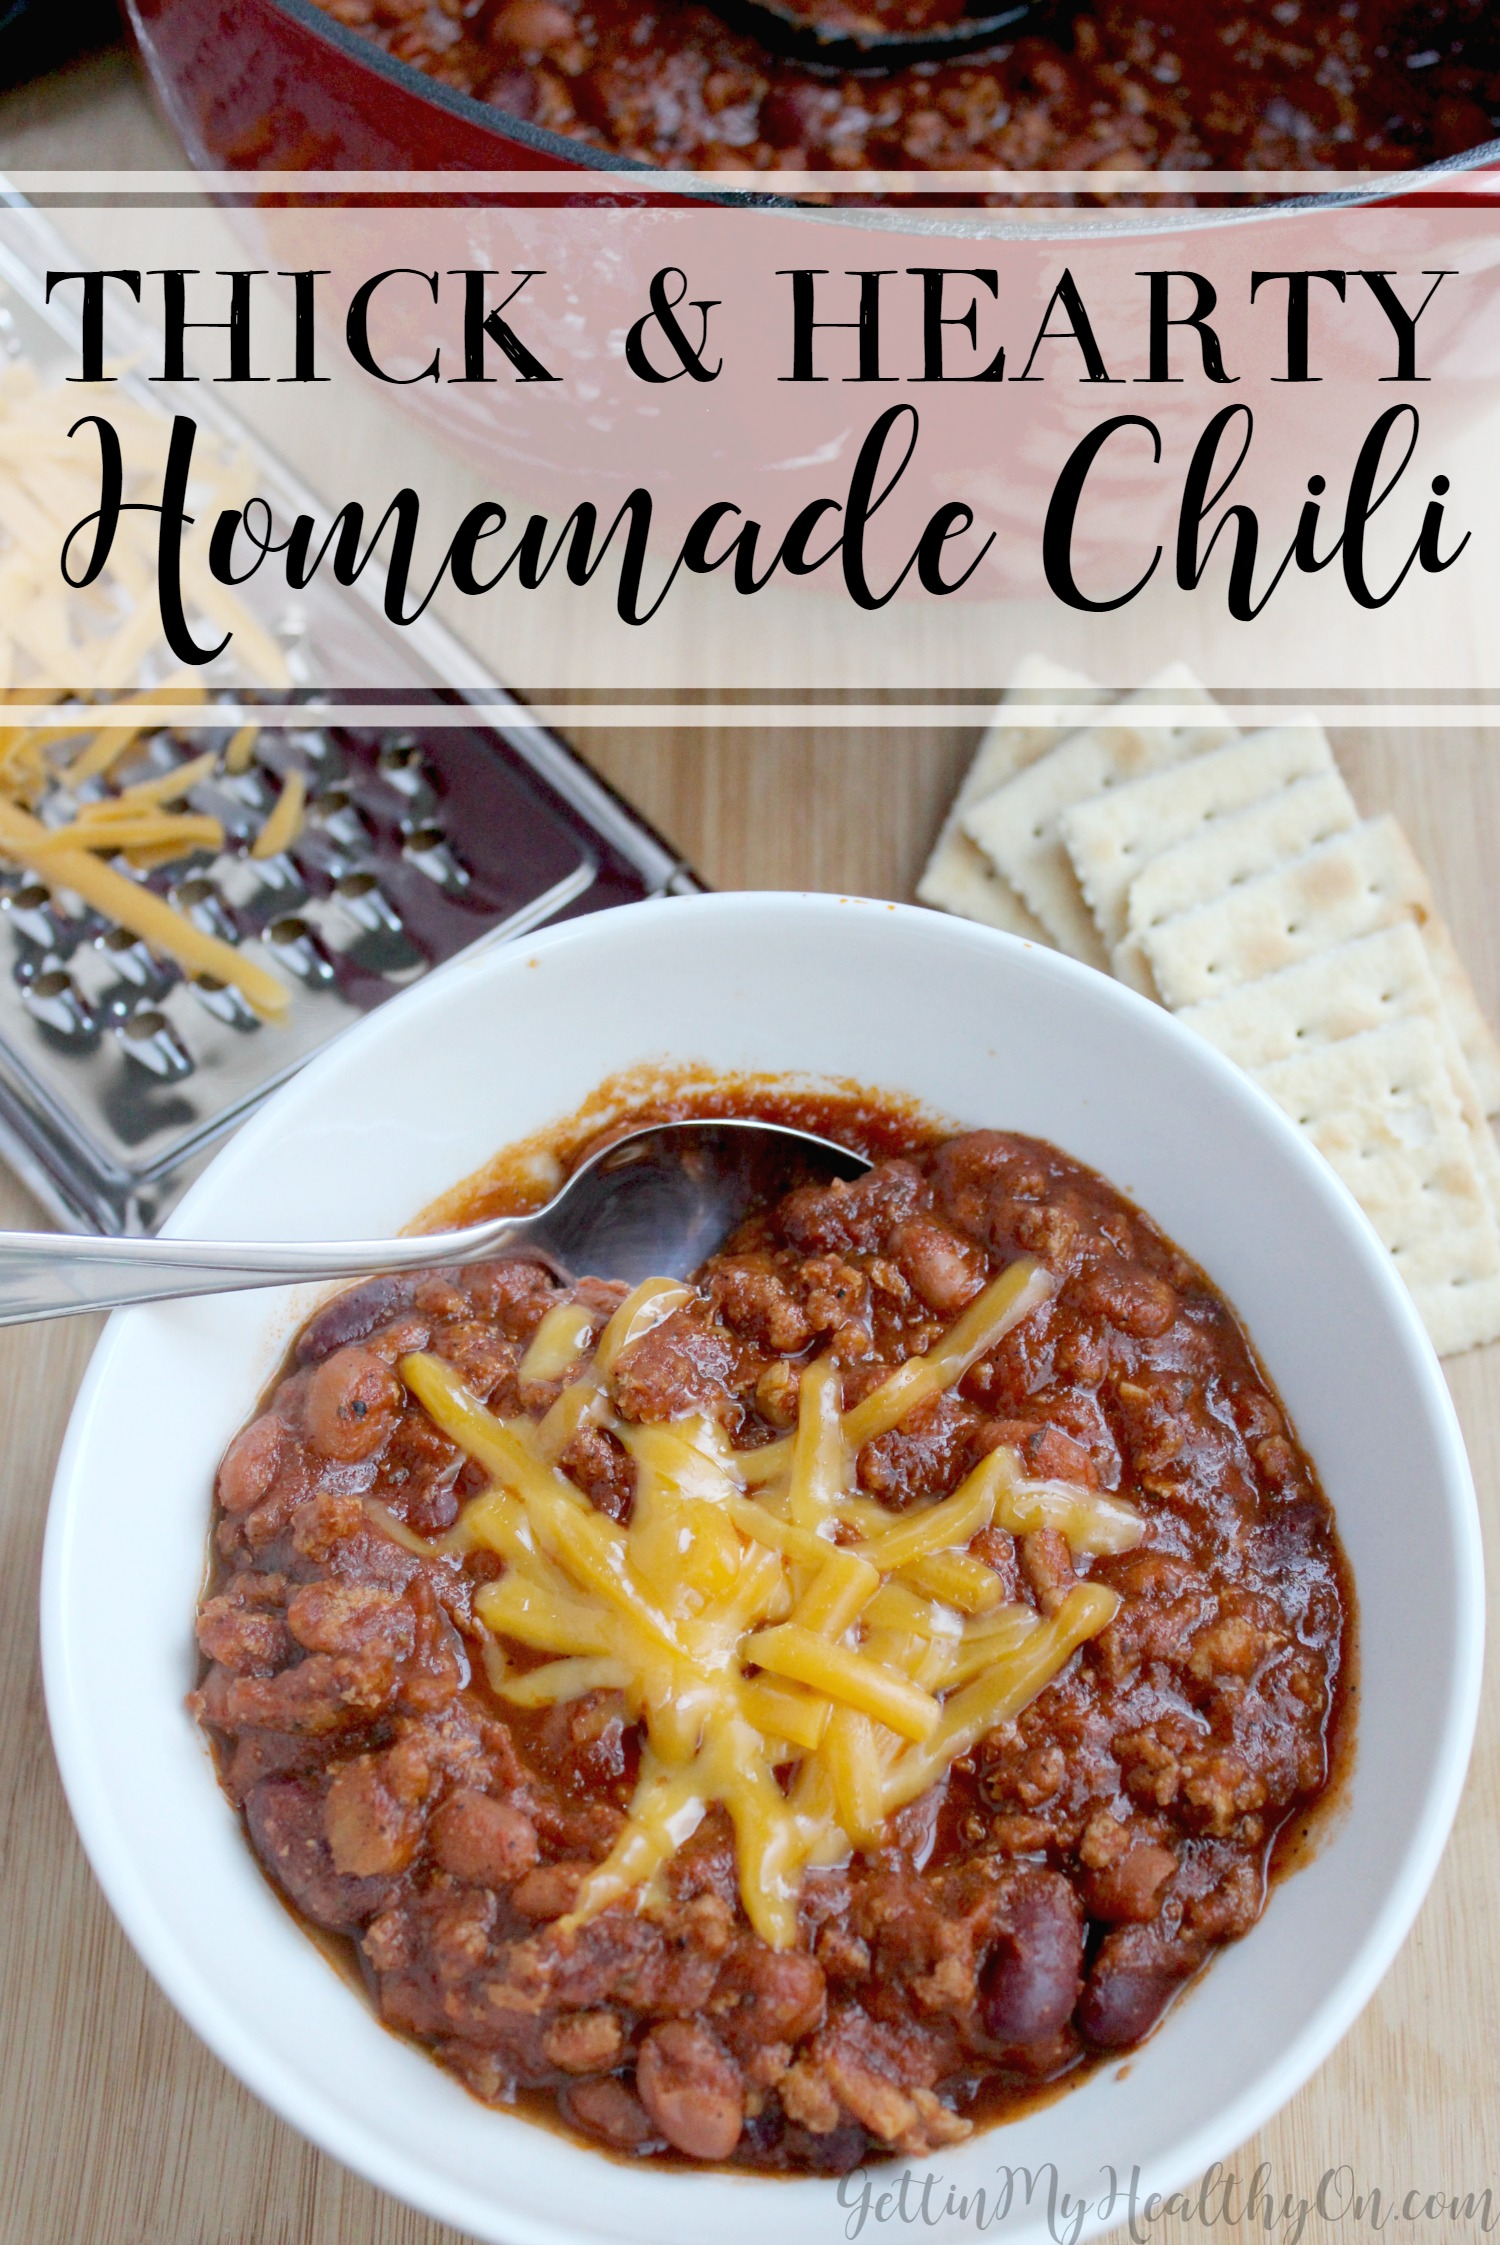 Thick and Hearty Chili